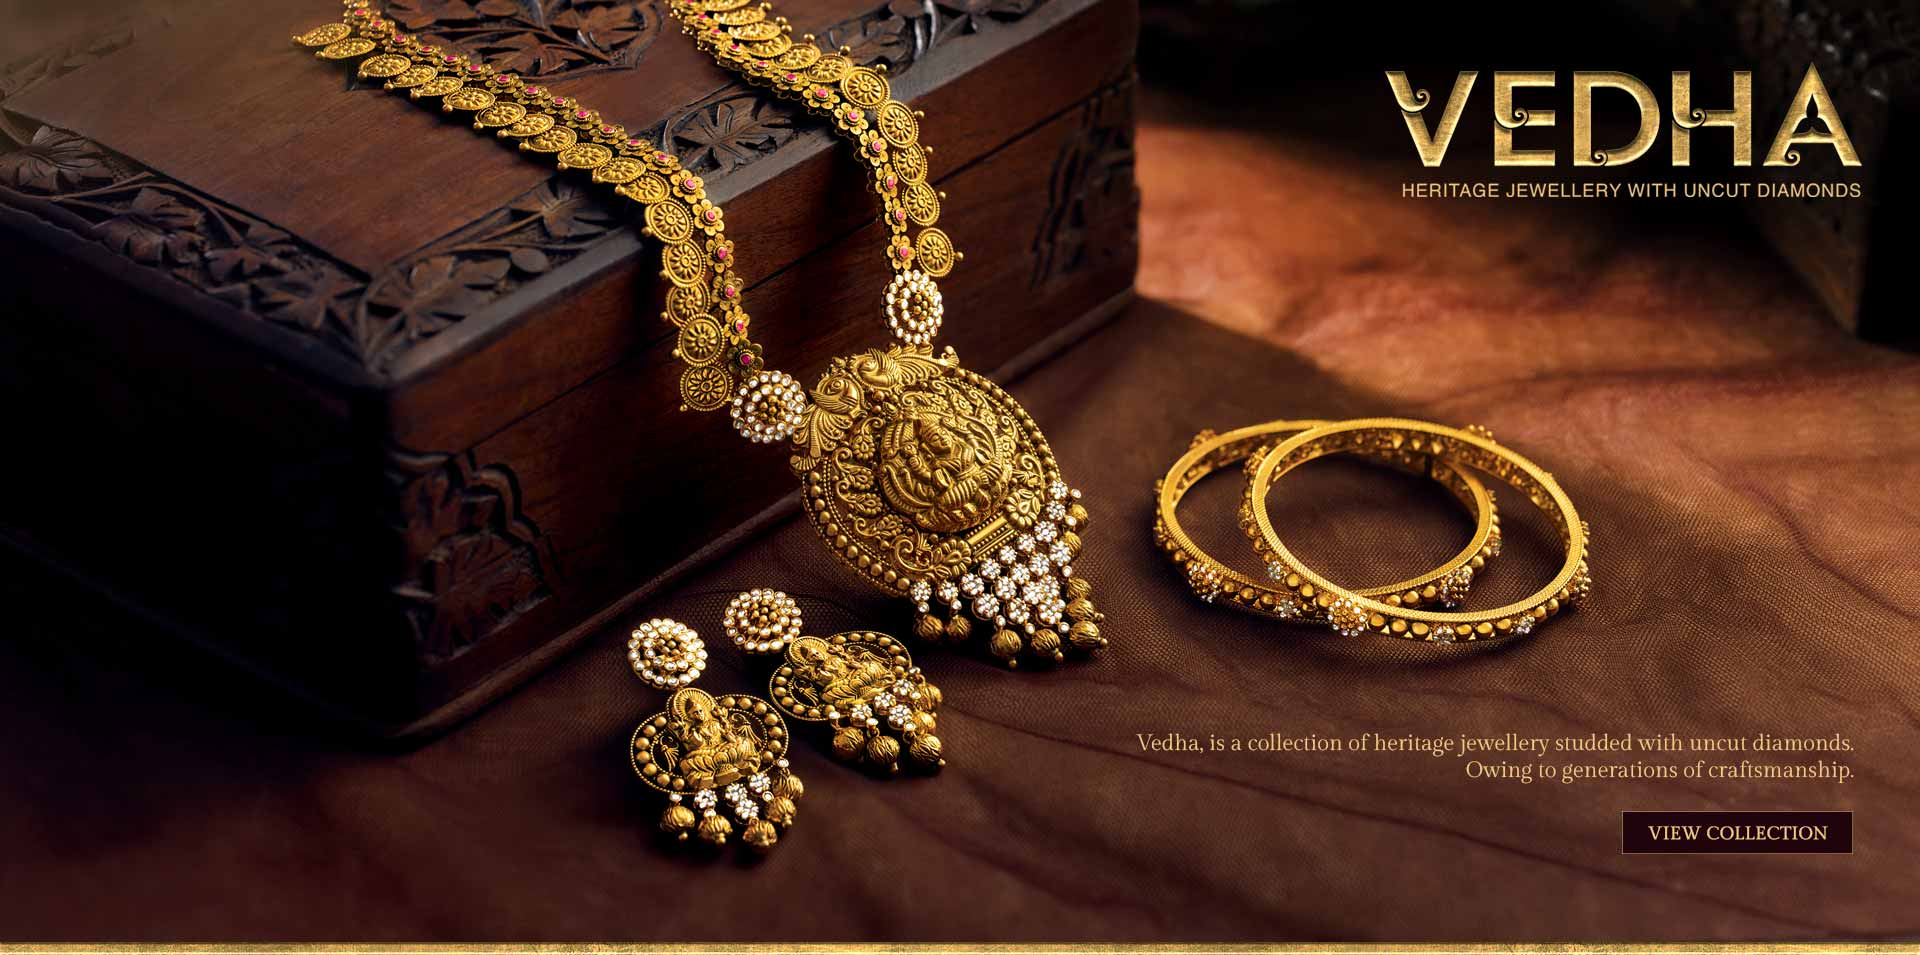 Vedha - Heritage Jewellery with Uncut Diamonds | Candere.com - A ...